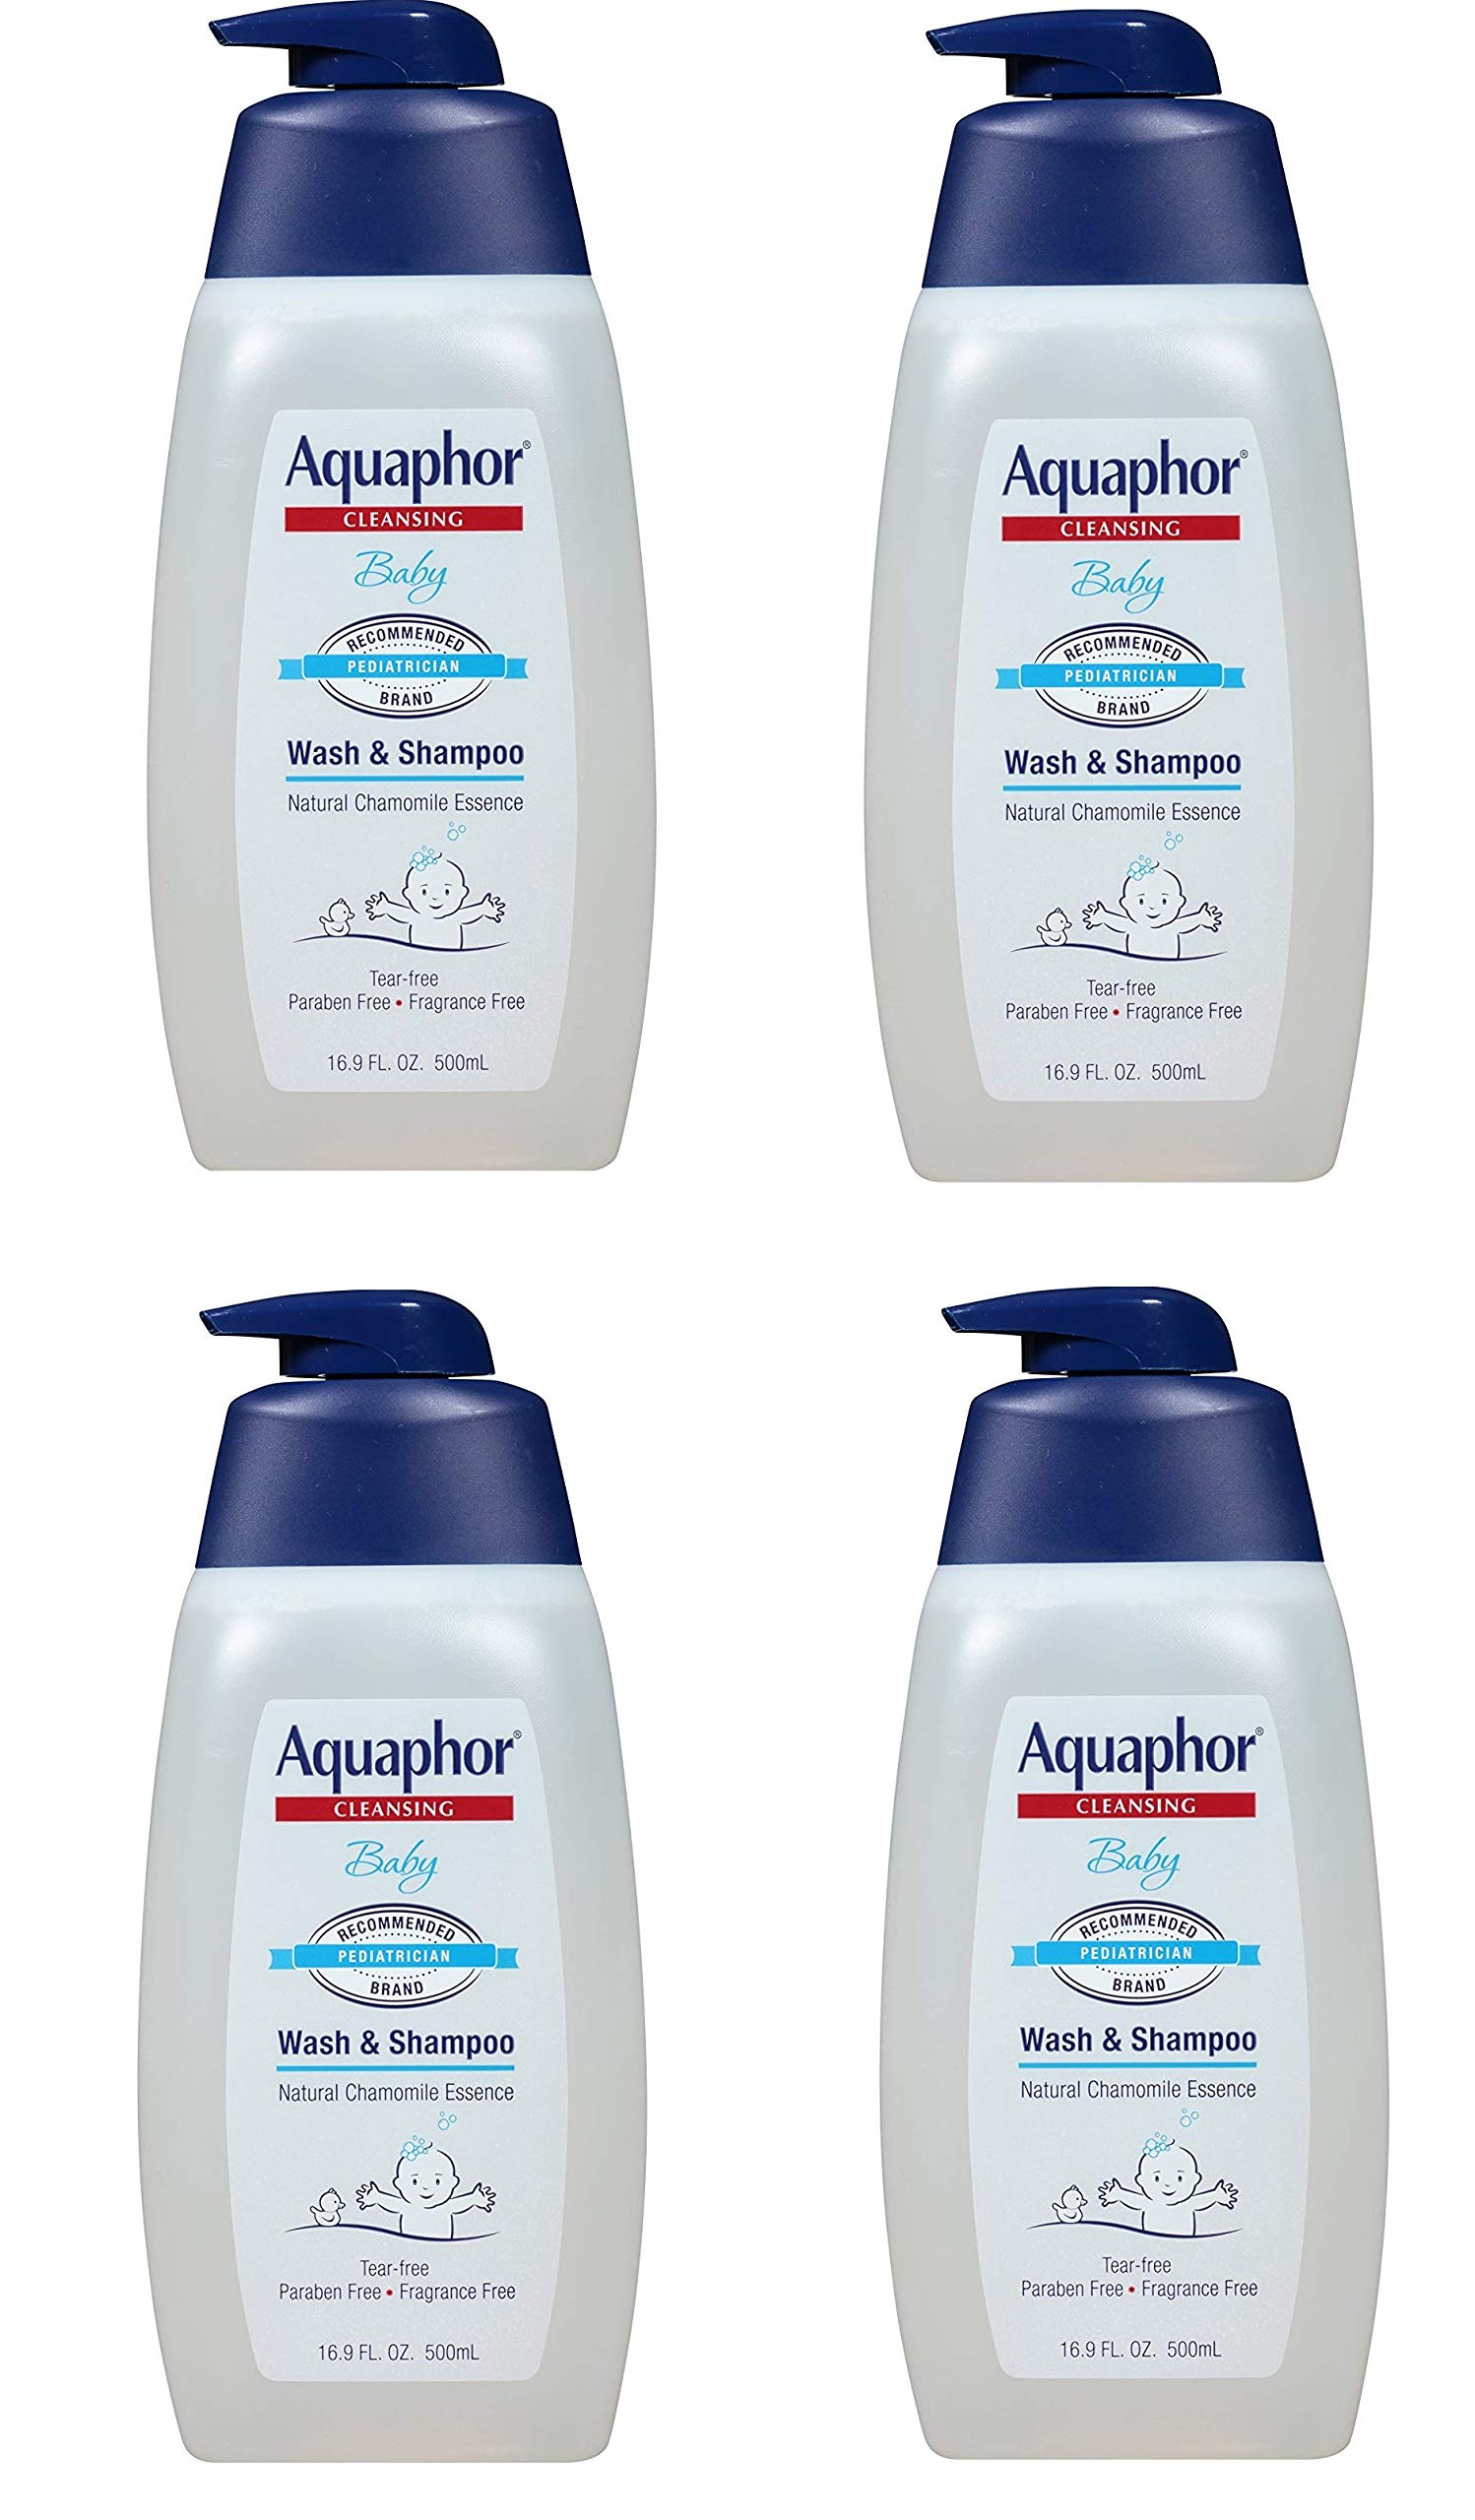 Aquaphor Baby Wash and Shampoo - Mild, Tear-free 2-in-1 Solution for Babyâ€s Sensitive Skin - 16.9 fl. oz. Pump, 4 Pack by Aquaphor